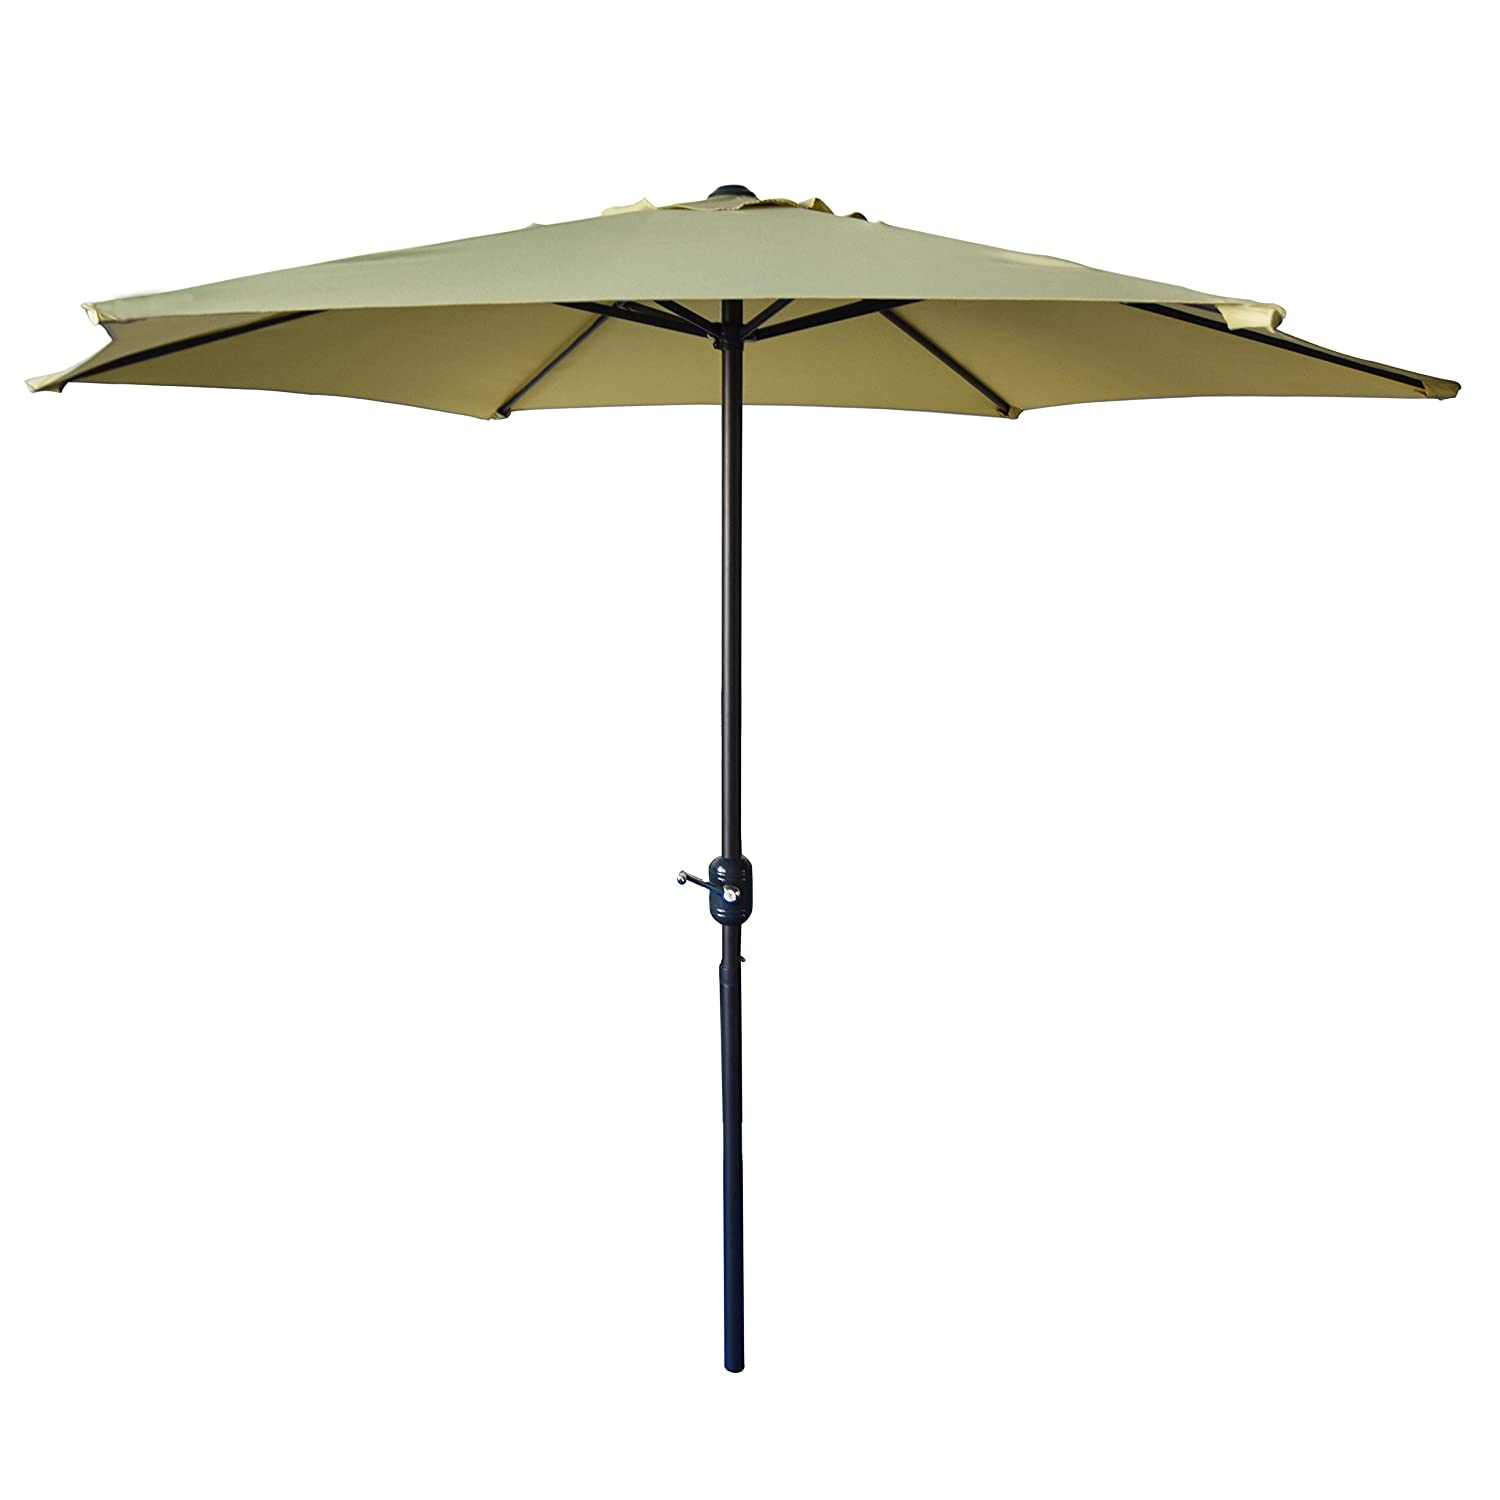 ShadeRest 9 ft Outdoor Aluminum Patio Market Umbrella with Crank, 6 Ribs, 100% Polyester, Light Green B0722XBQY2